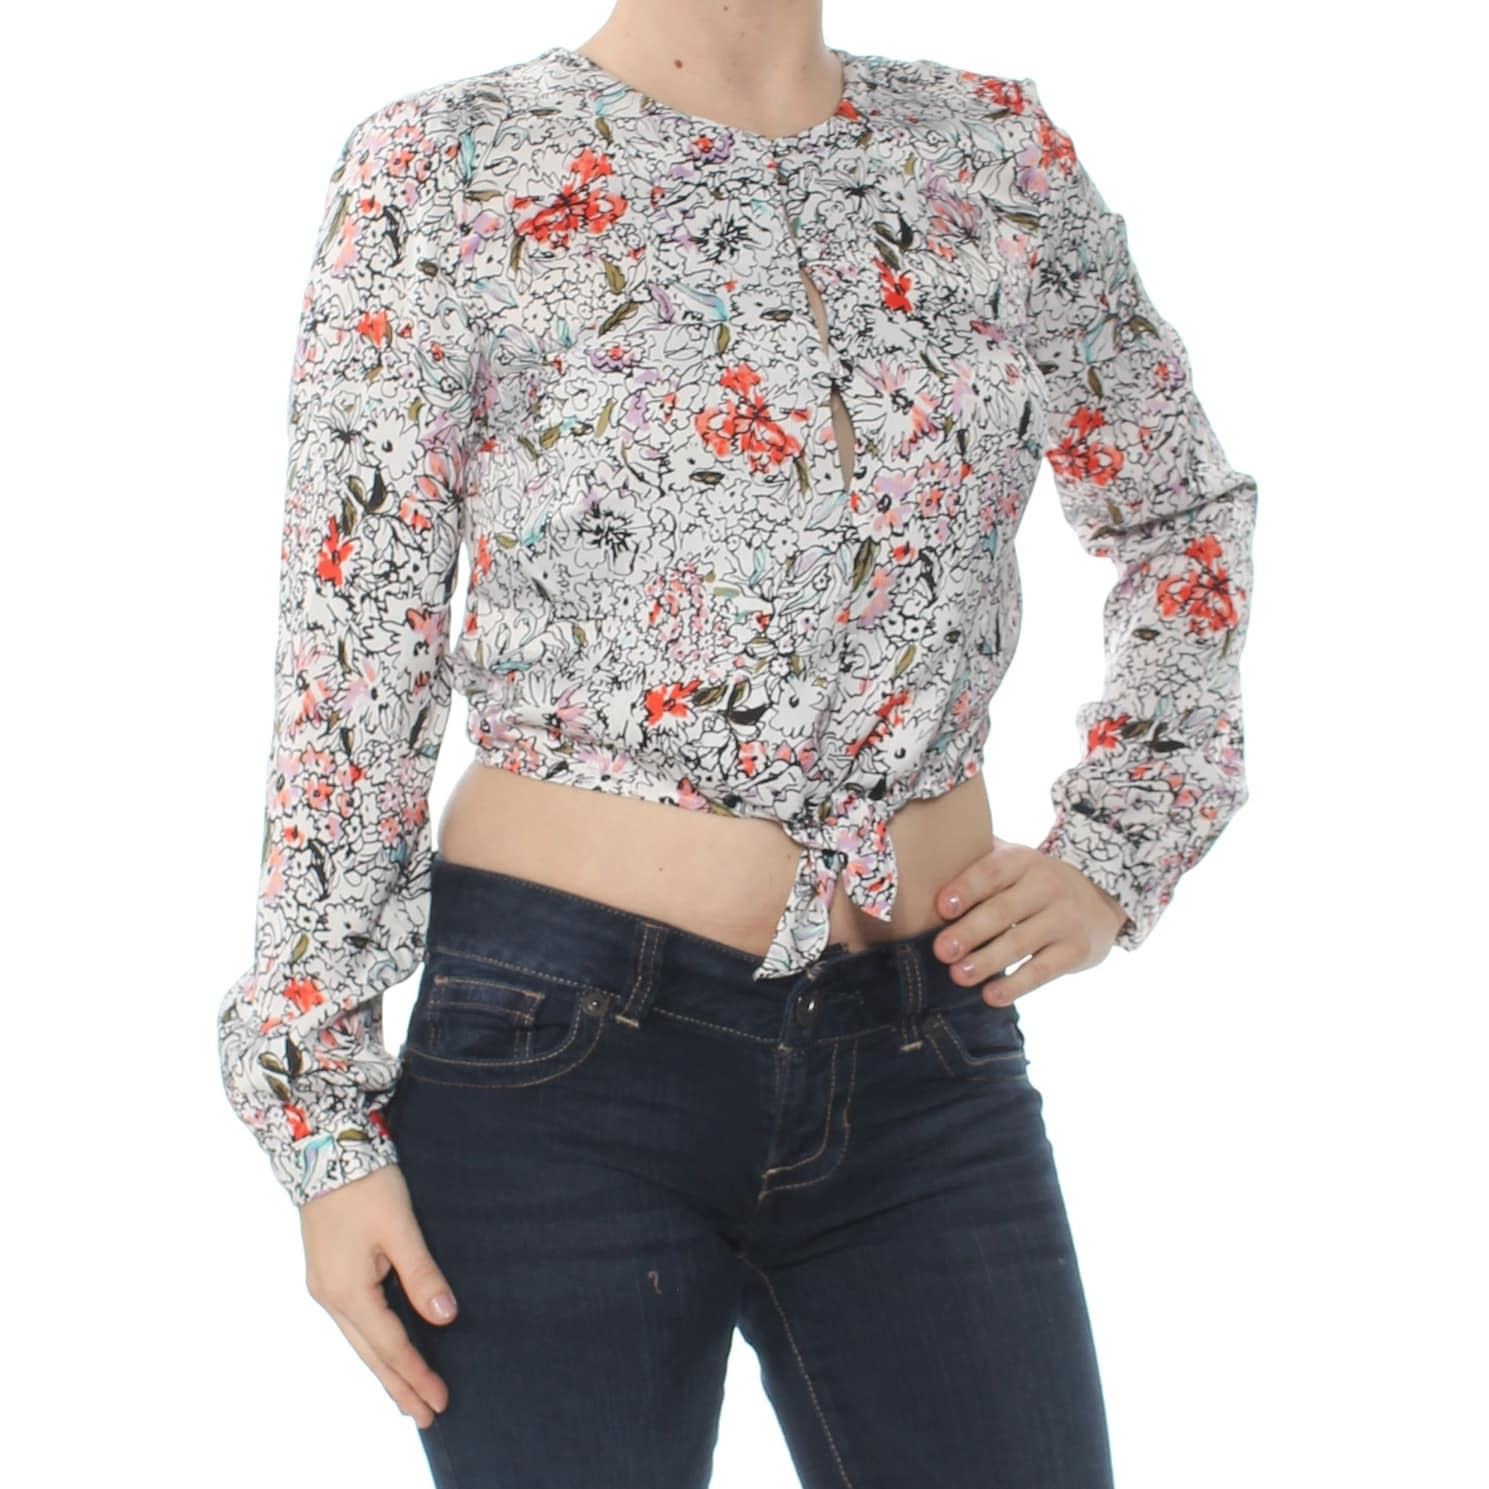 Guess Tops | Find Great Women's Clothing Deals Shopping at